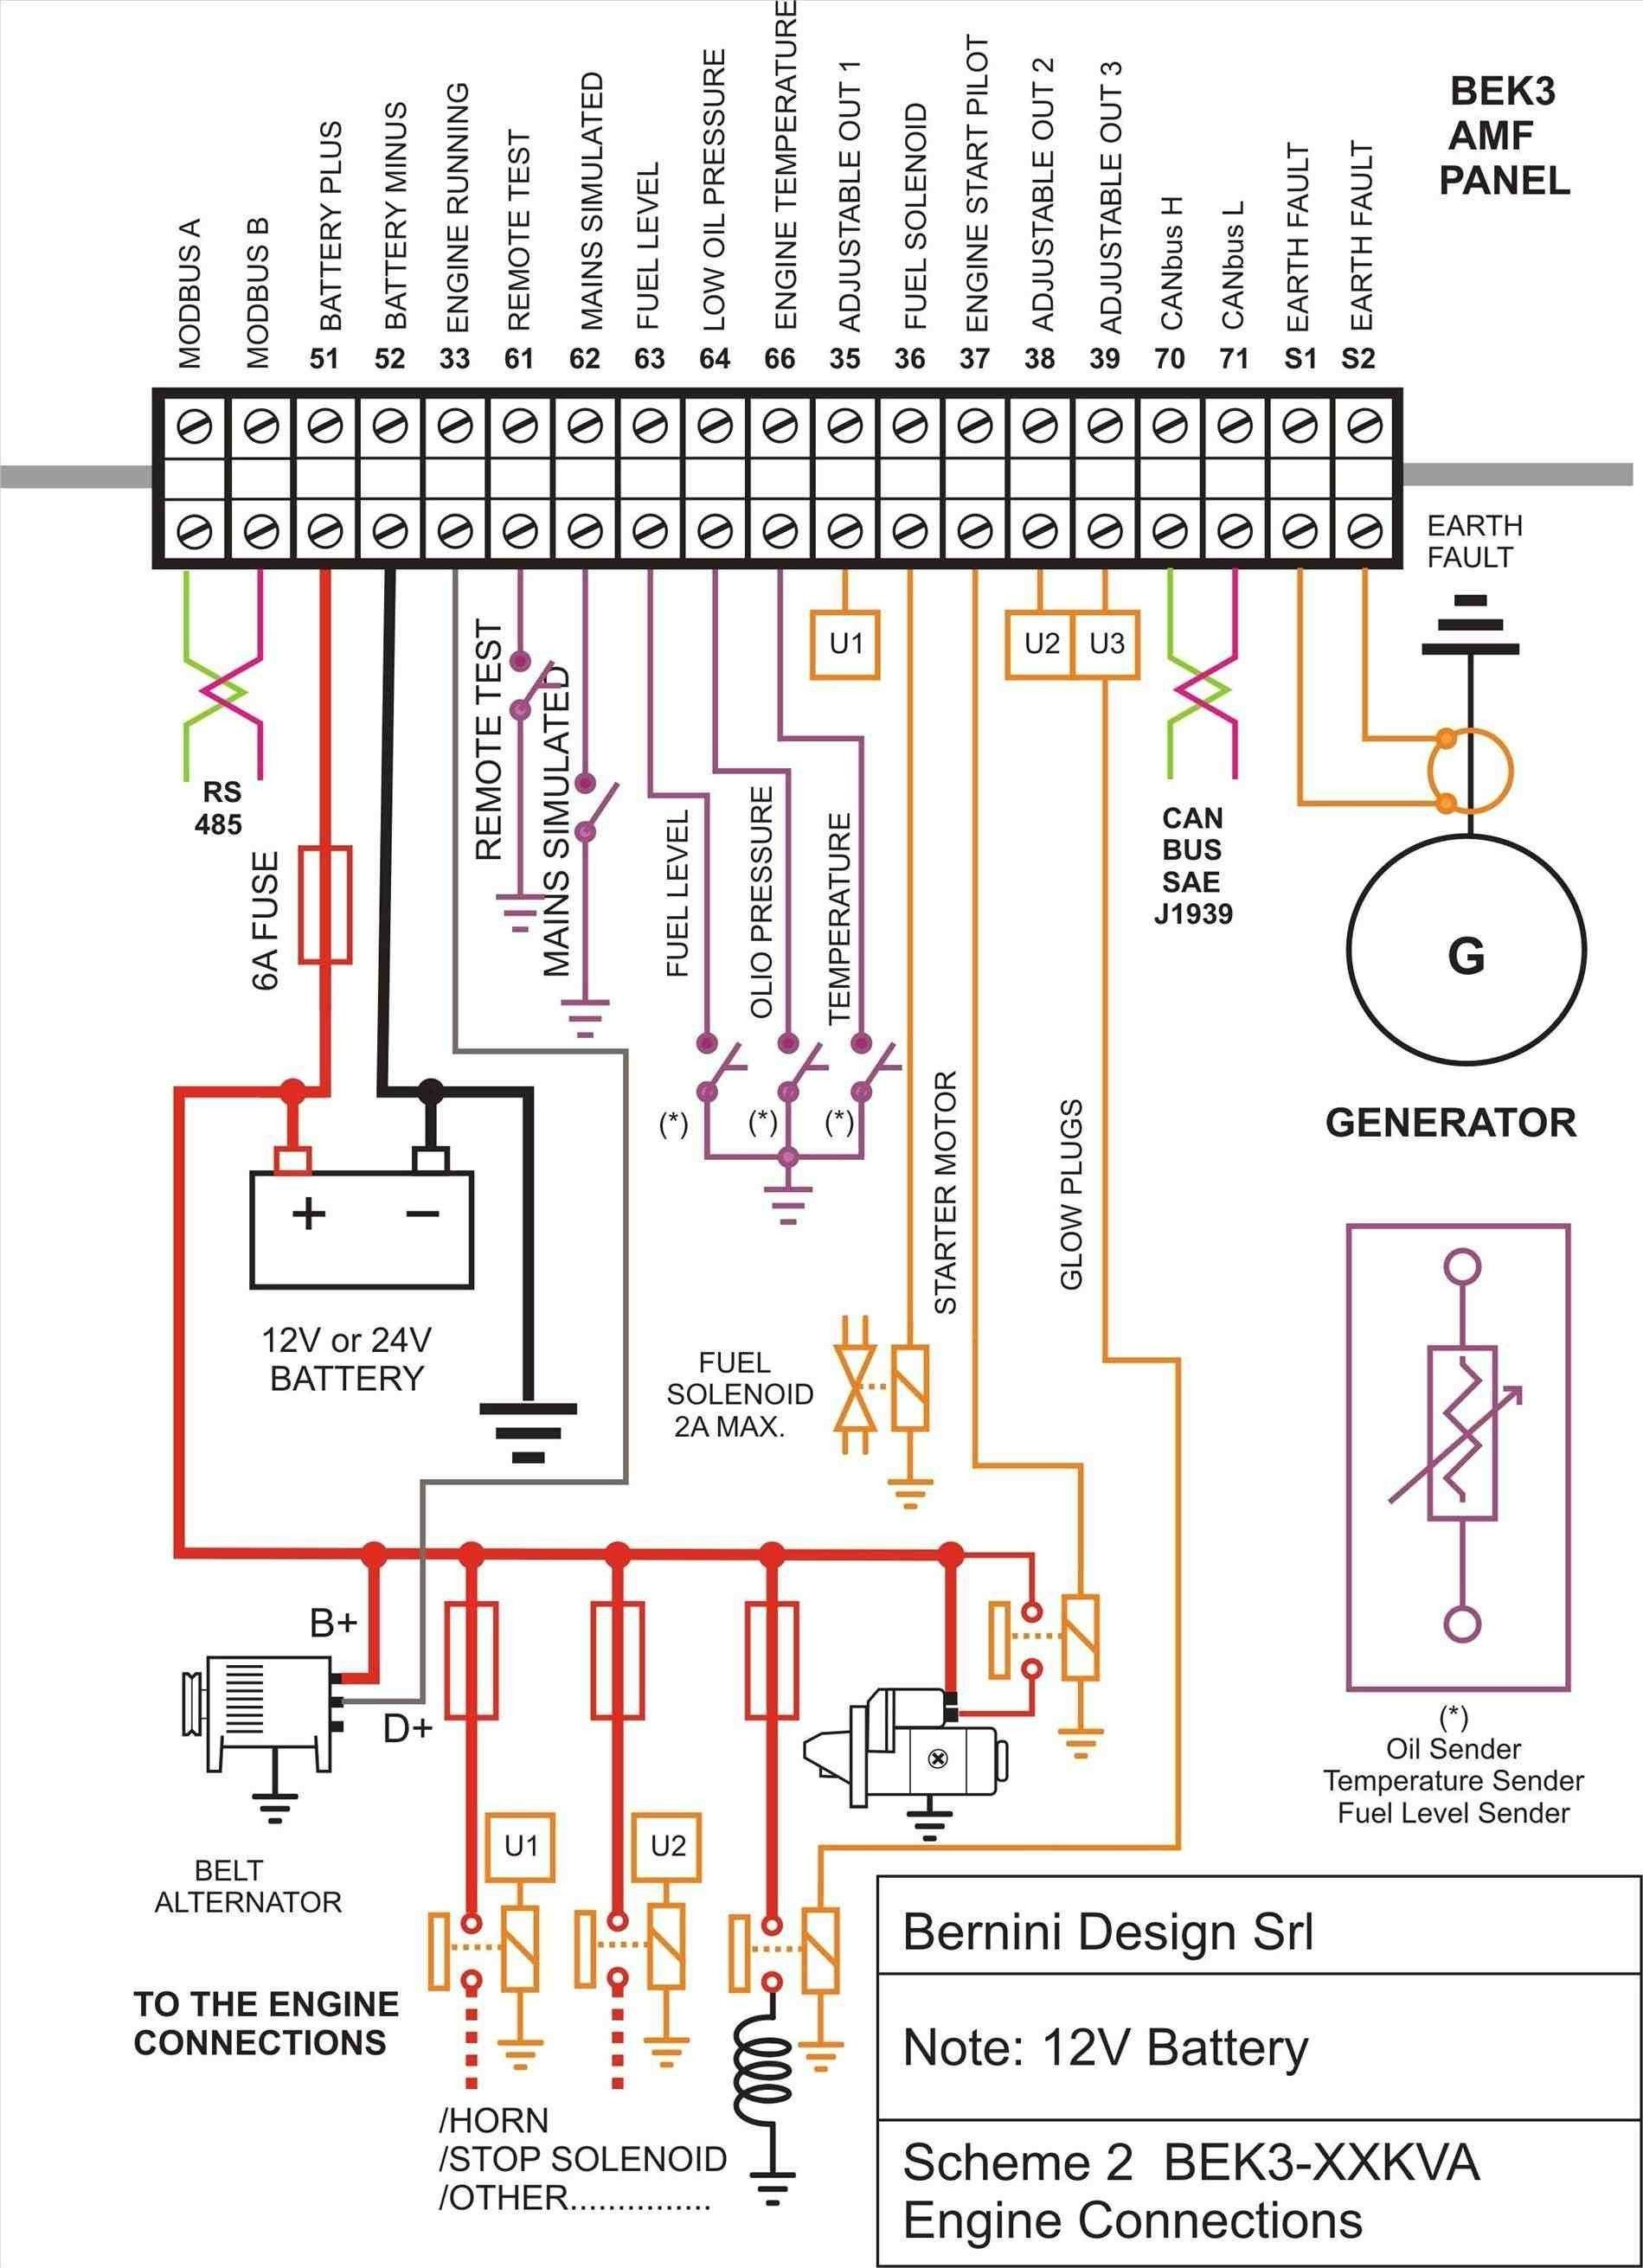 house wiring circuit diagram pdf fresh typical wiring diagram for electrical schematic diagram pdf electrical circuit diagrams pdf [ 1899 x 2622 Pixel ]